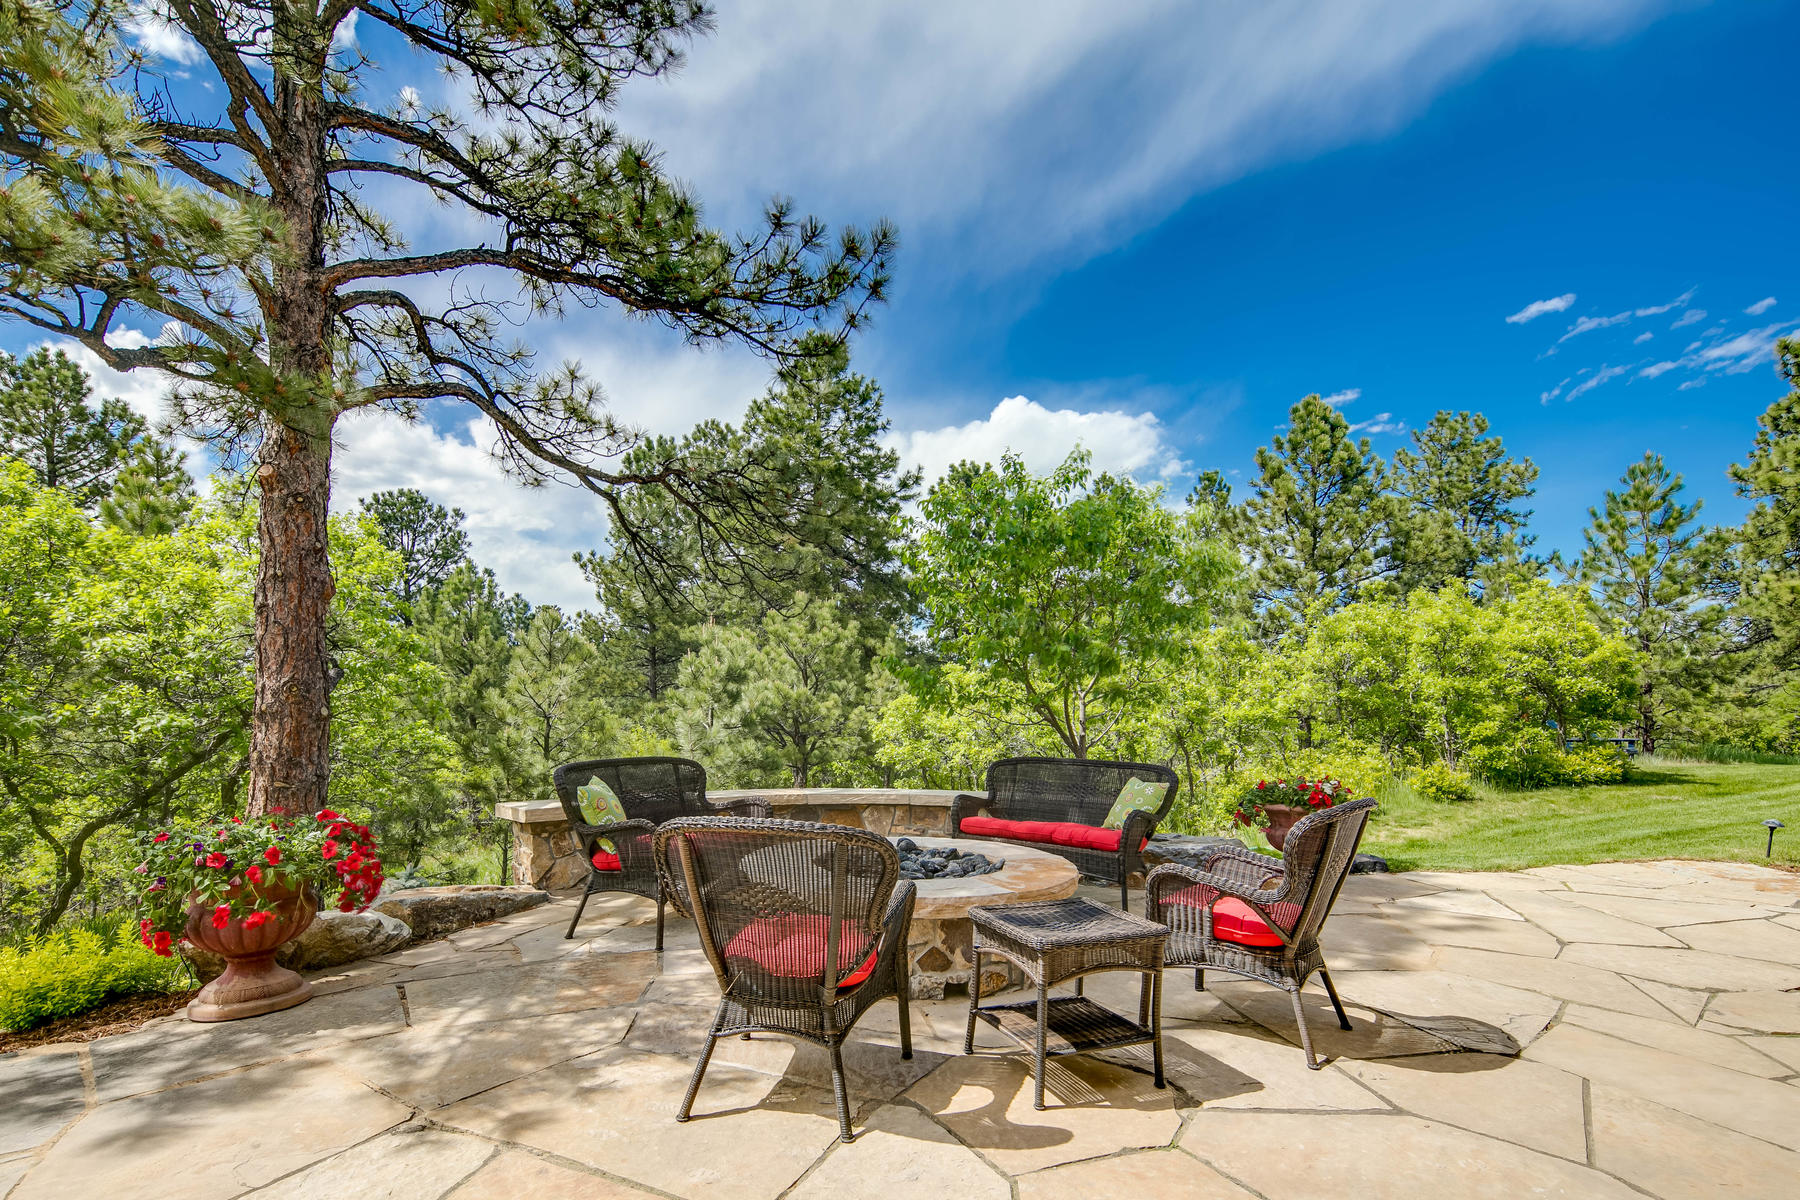 Additional photo for property listing at 1121 Northwood Ln 1121 Northwood Ln Castle Rock, Colorado 80108 United States